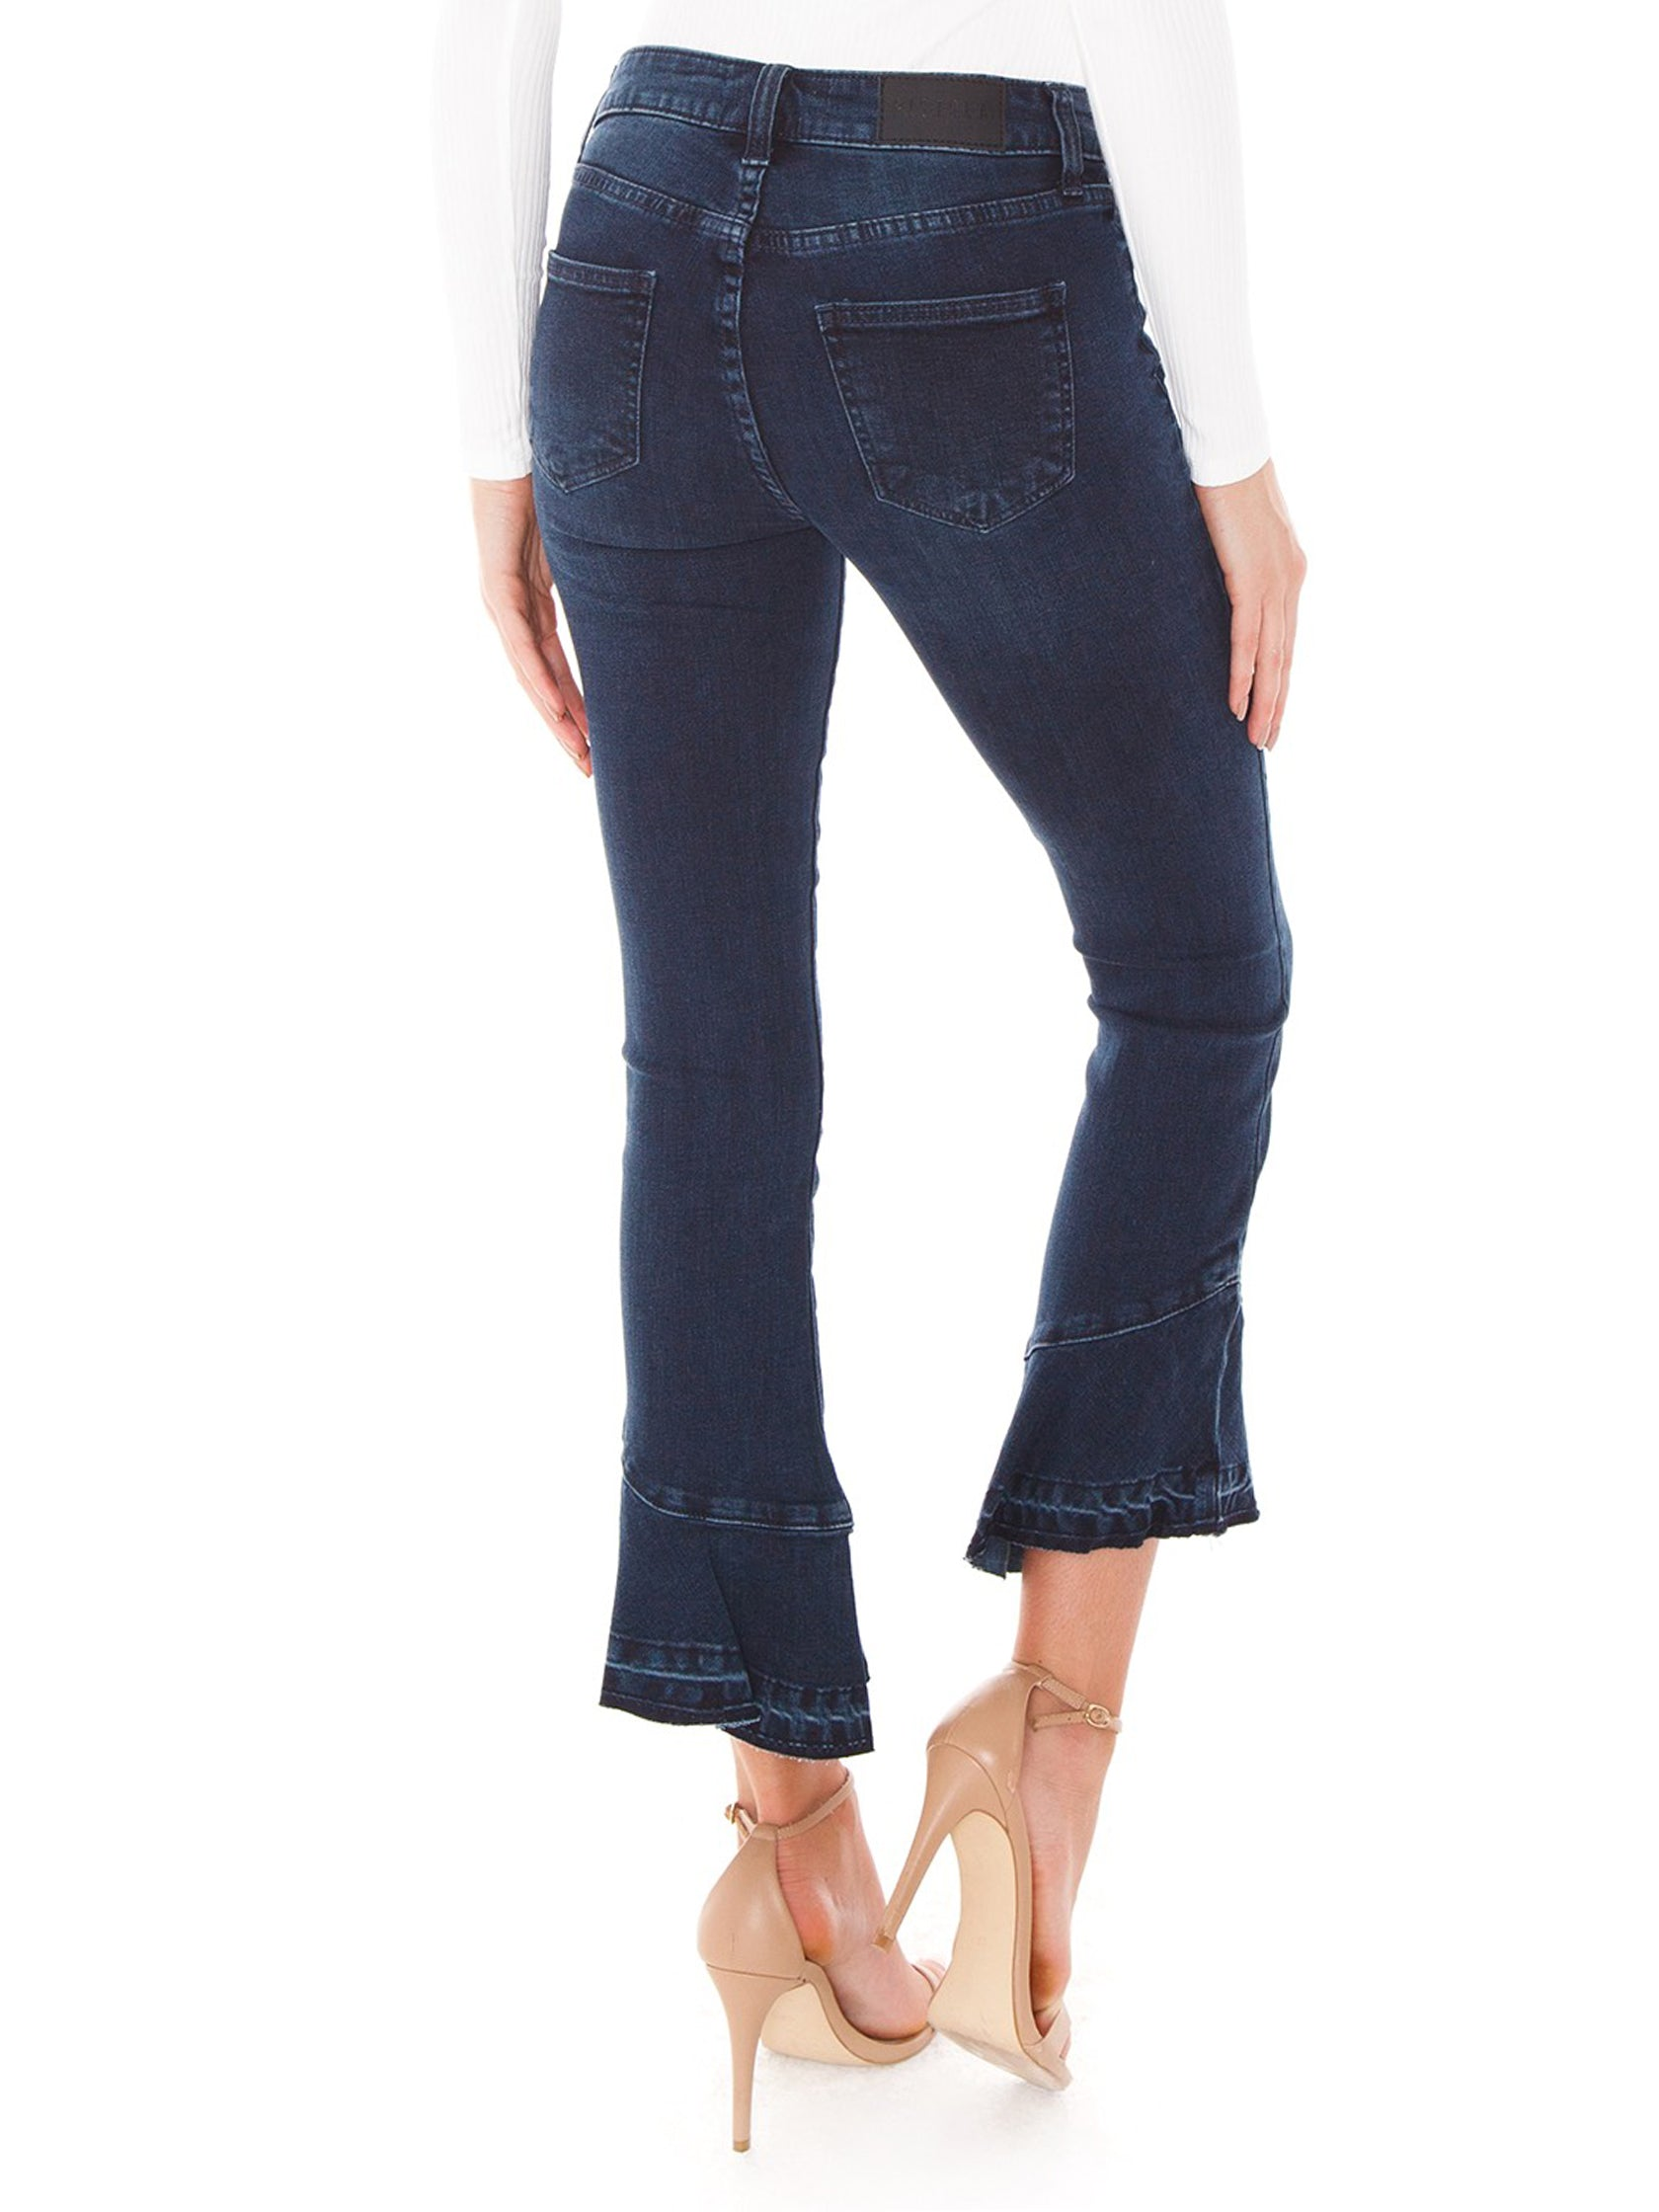 Women outfit in a denim rental from PISTOLA called Marina Mide Rise Flounce Hem Jeans